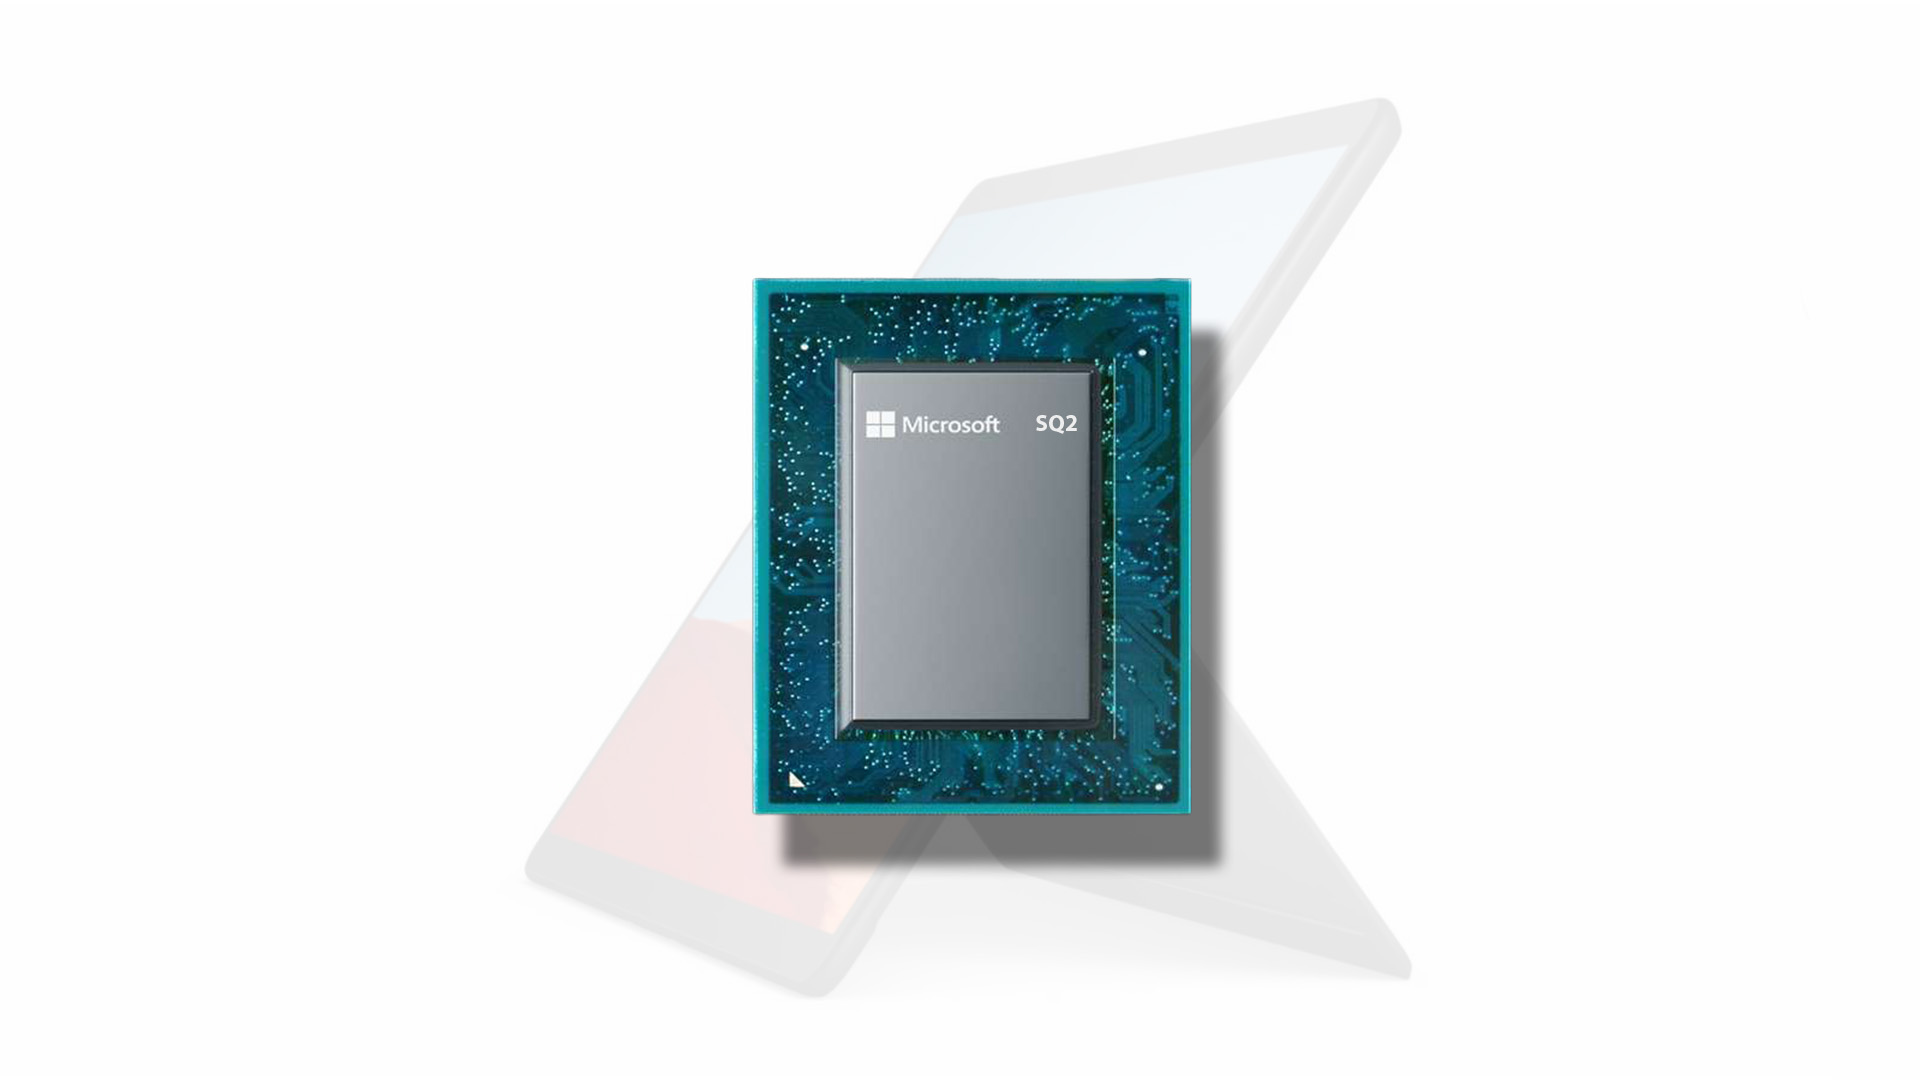 Image of article 'Microsoft Reportedly Designing Its Own ARM-Based Chips for Future Surface Products to Take on Apple'